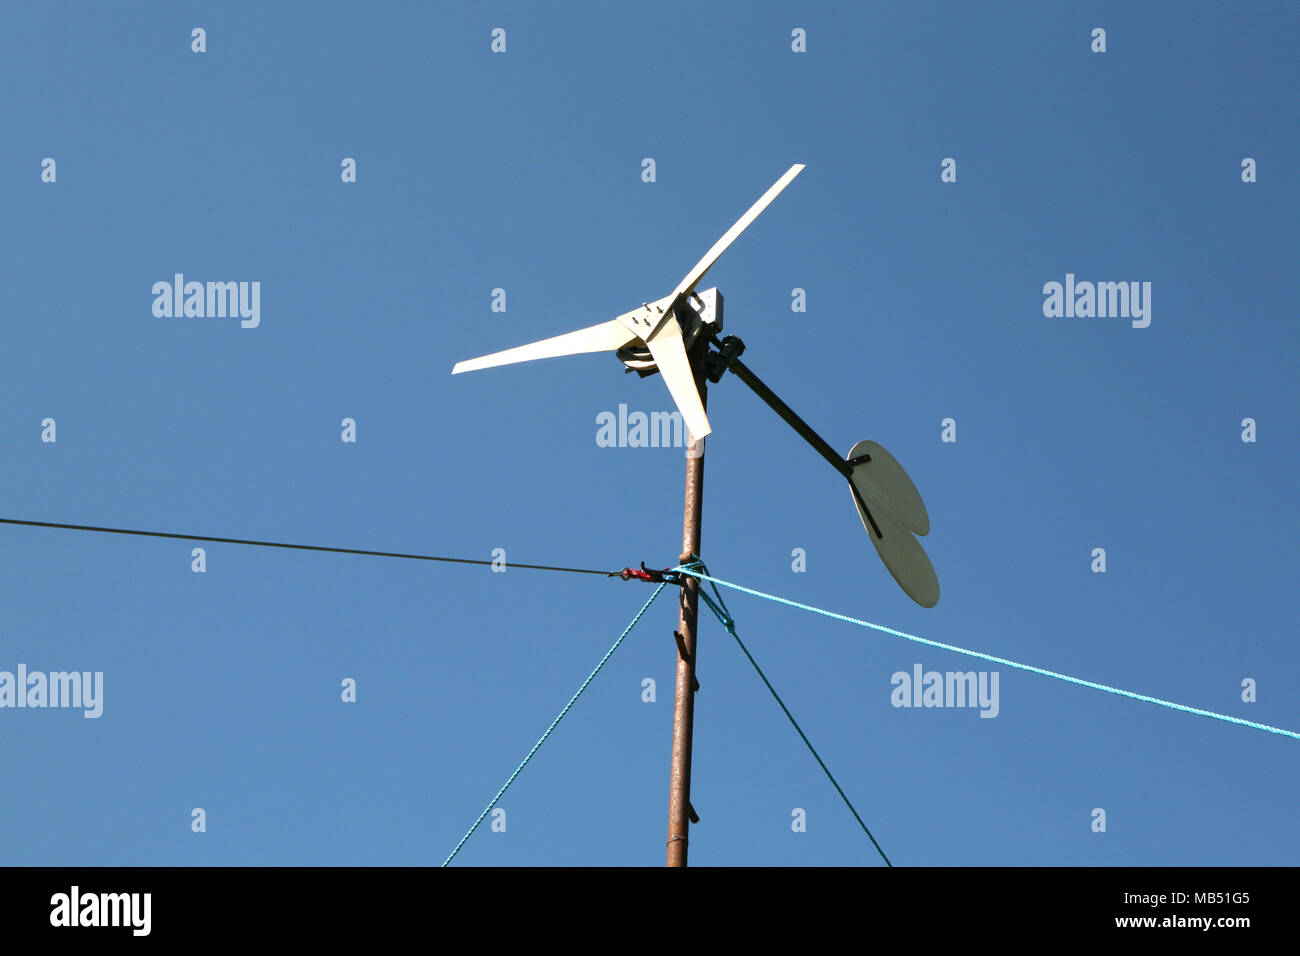 Small wind turbine clean energy production selfbuilt - Stock Image